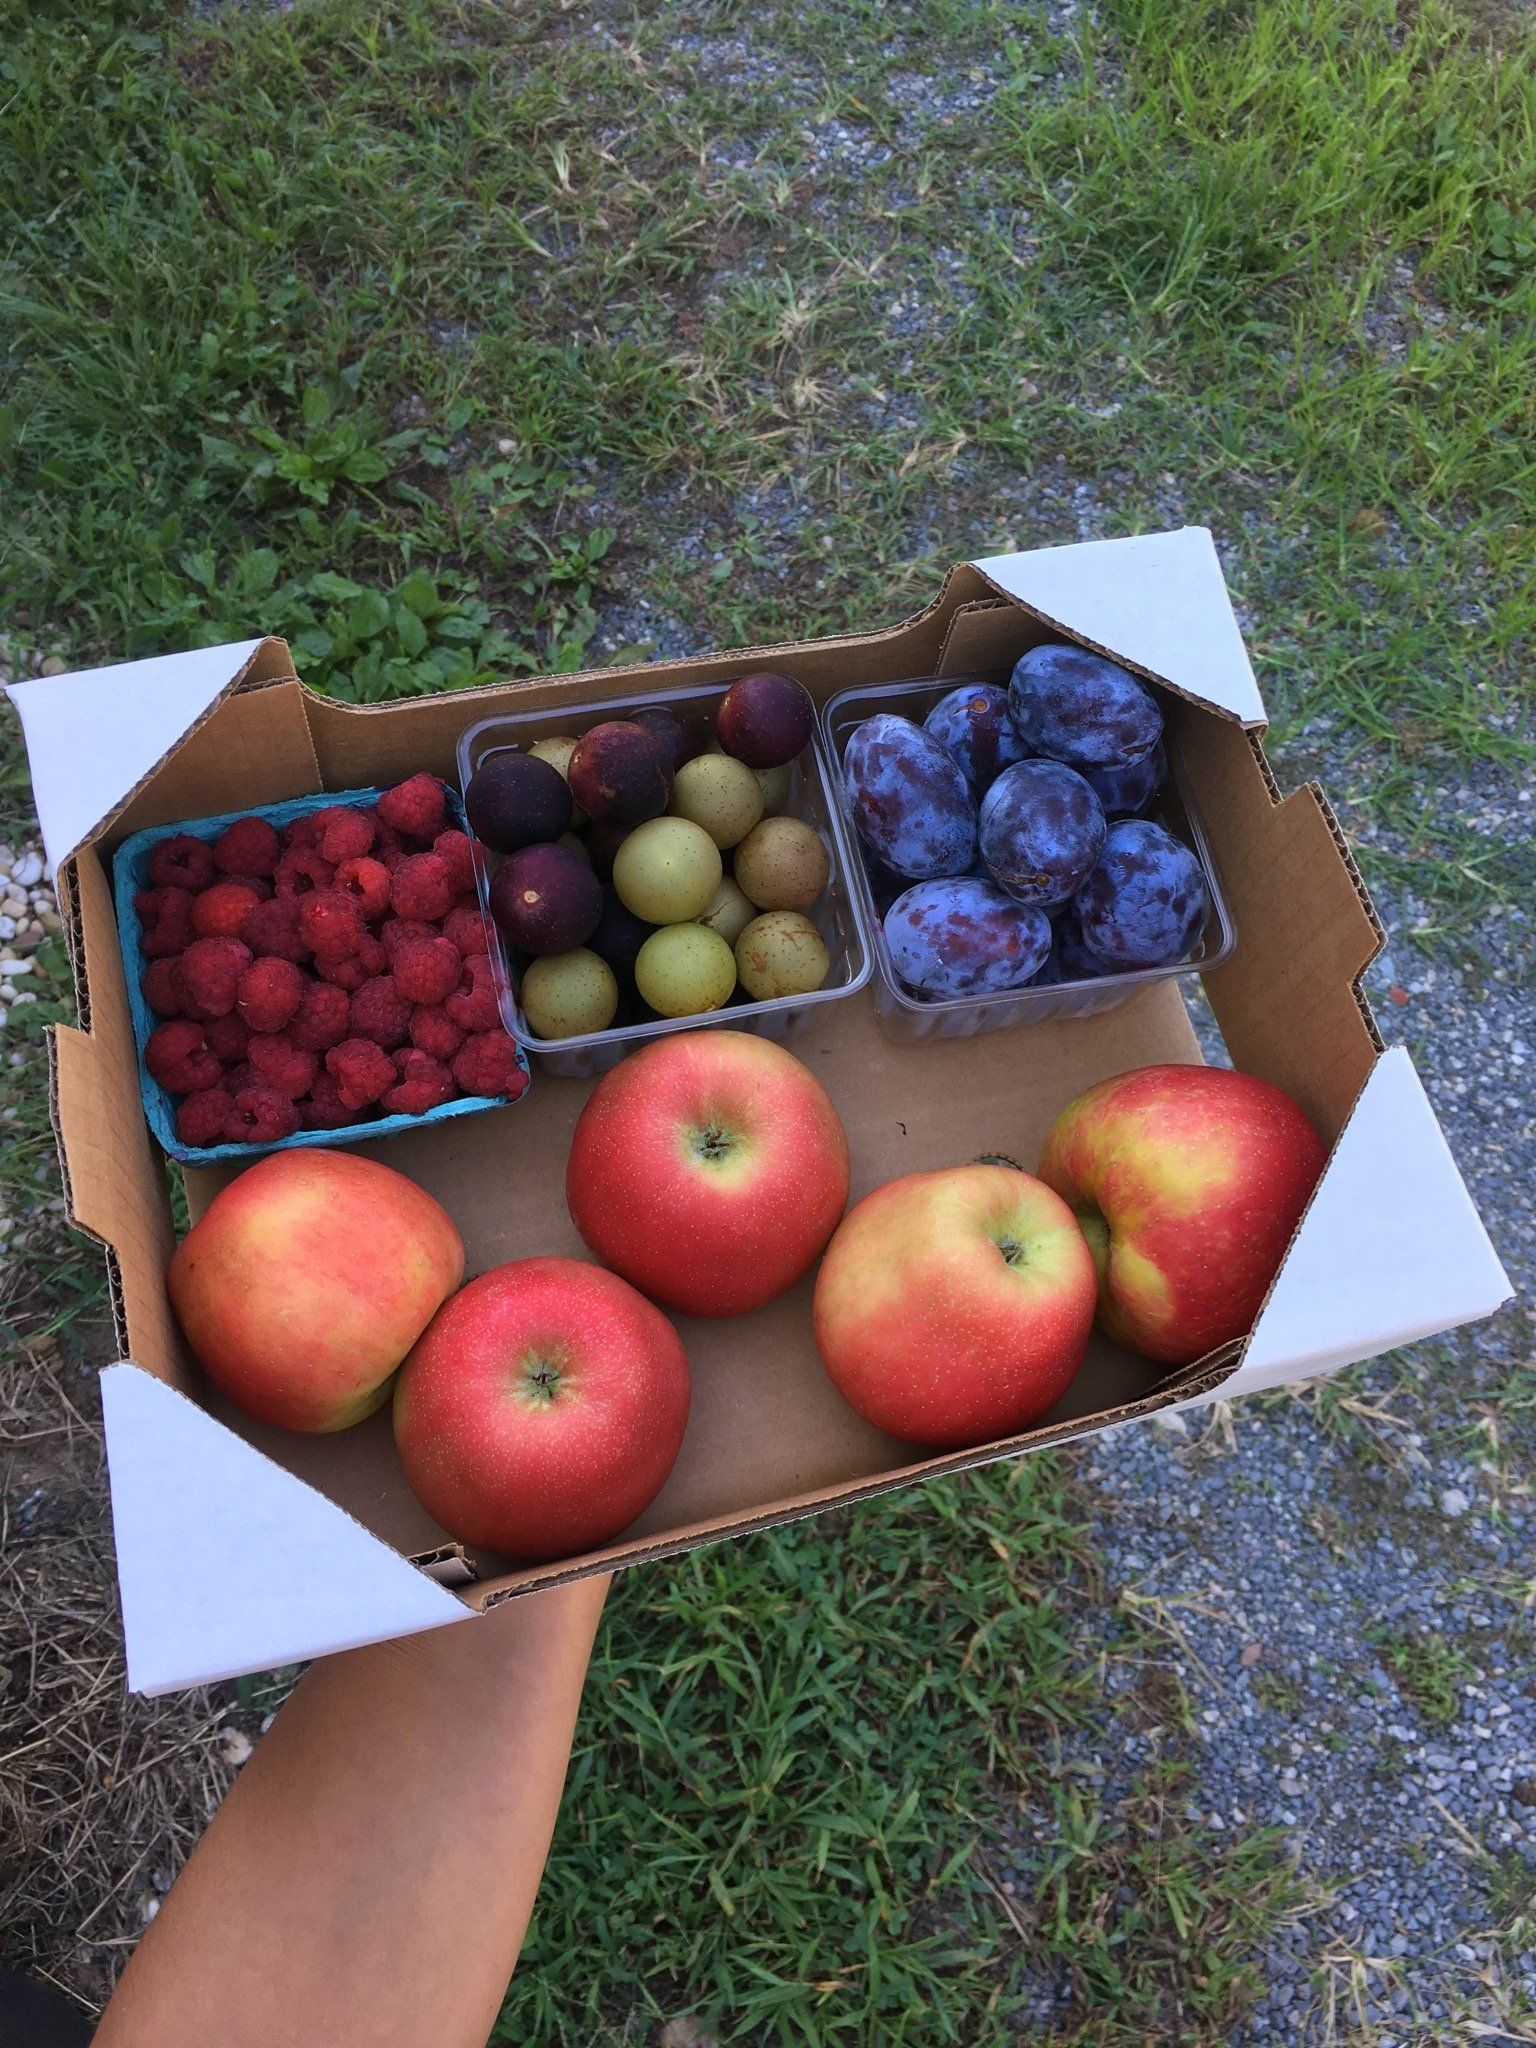 Previous Happening: Final week of the Summer Farm Share. Next week begins the Fall Farm Share